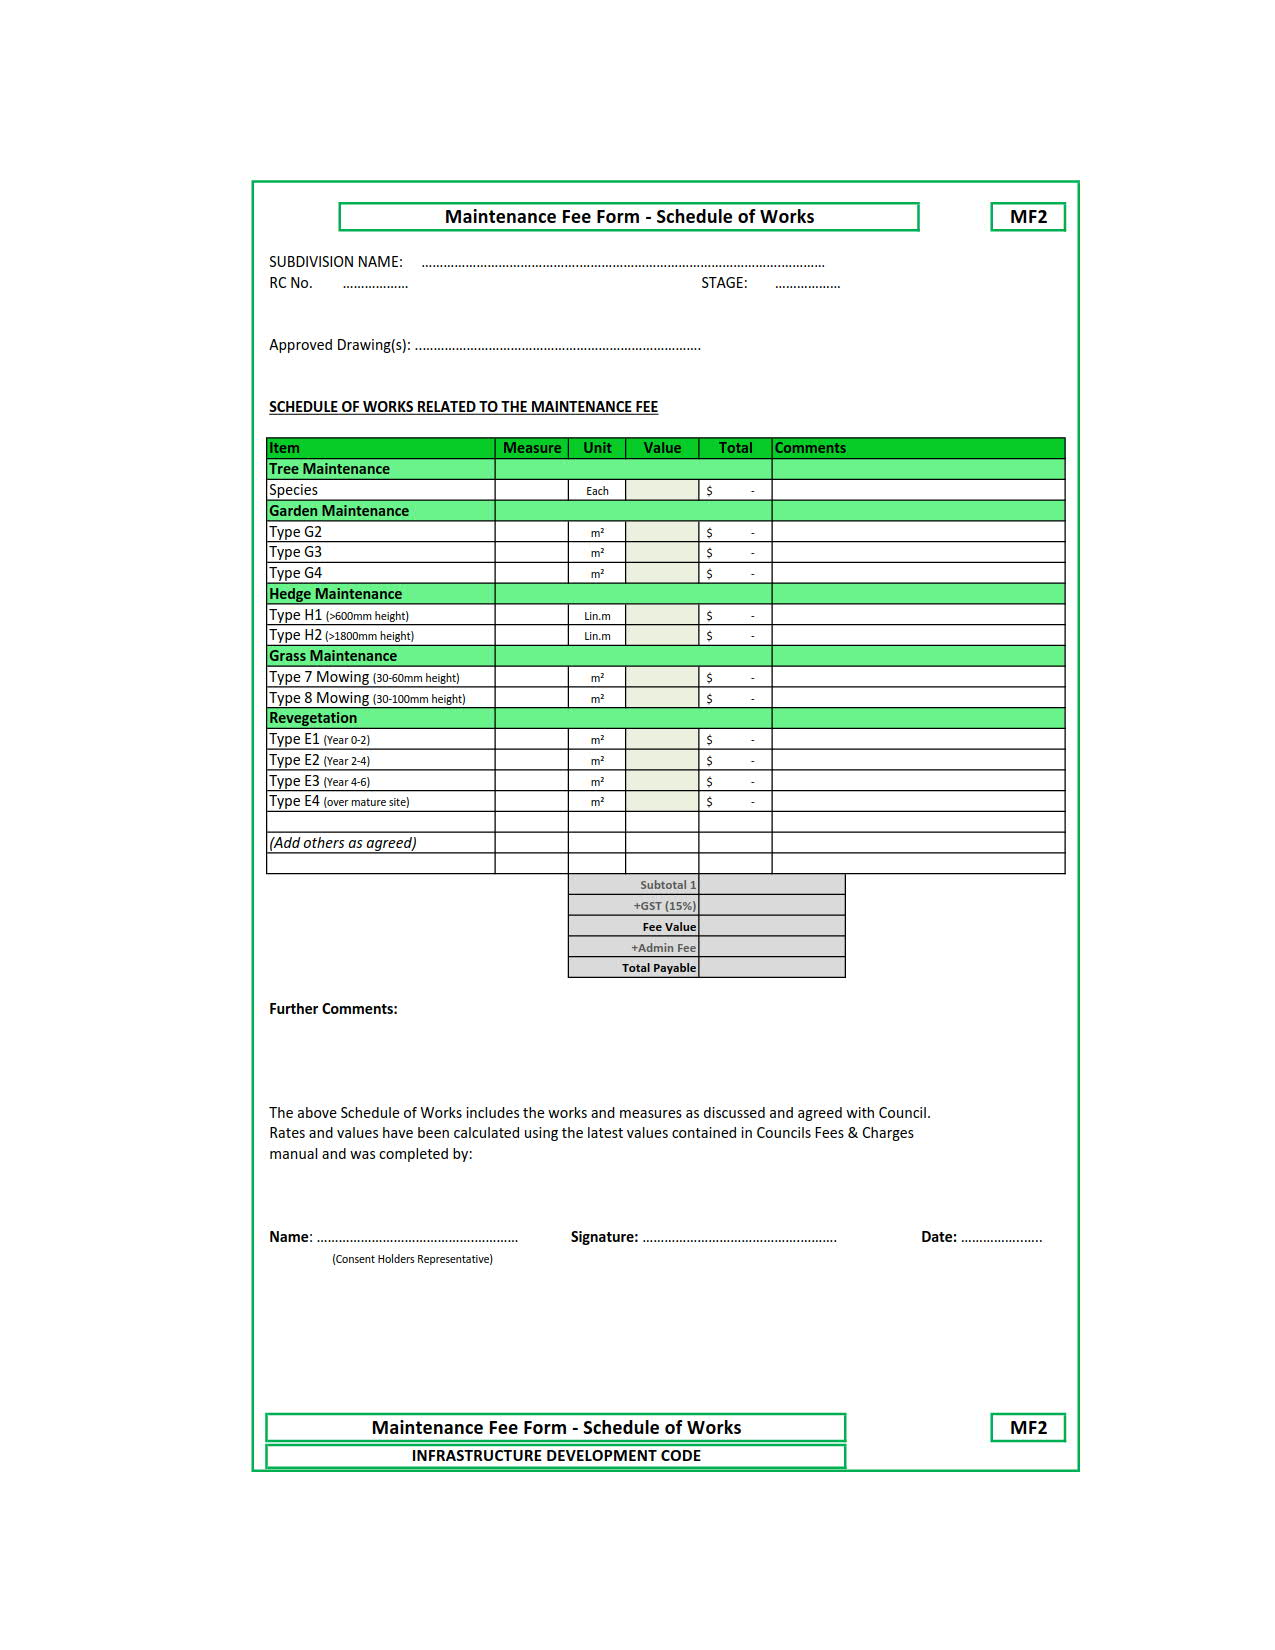 MF2 Maintenance Fee Form - Schedule Works